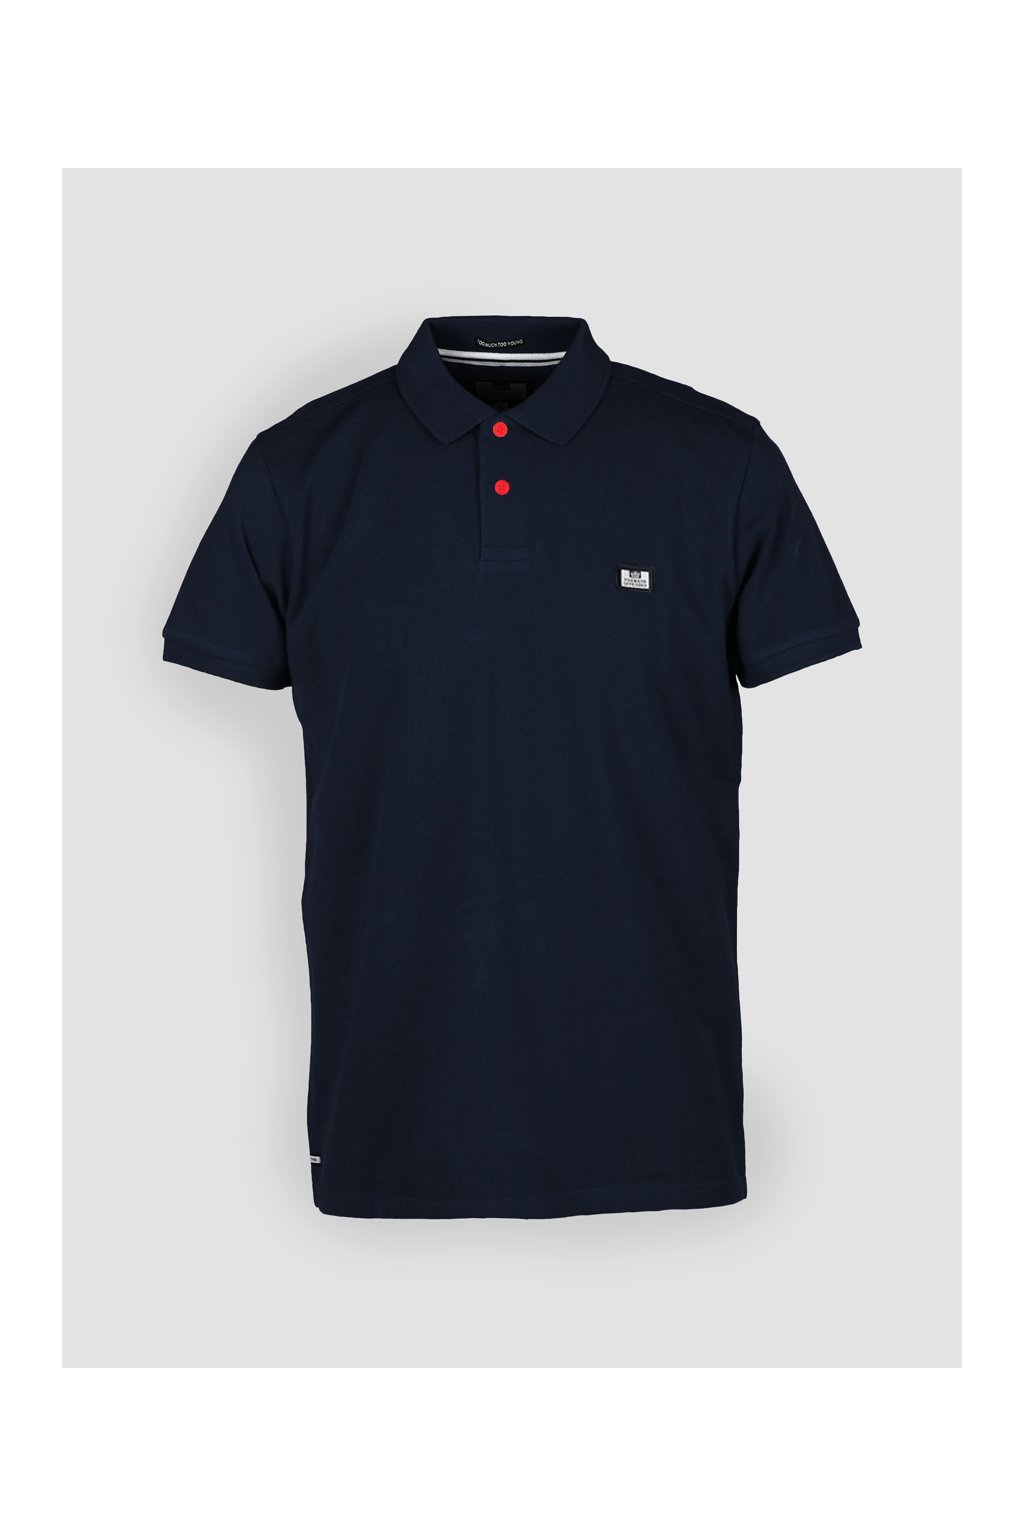 POSS18 01 PREISTLEY BADGE POLO NAVY